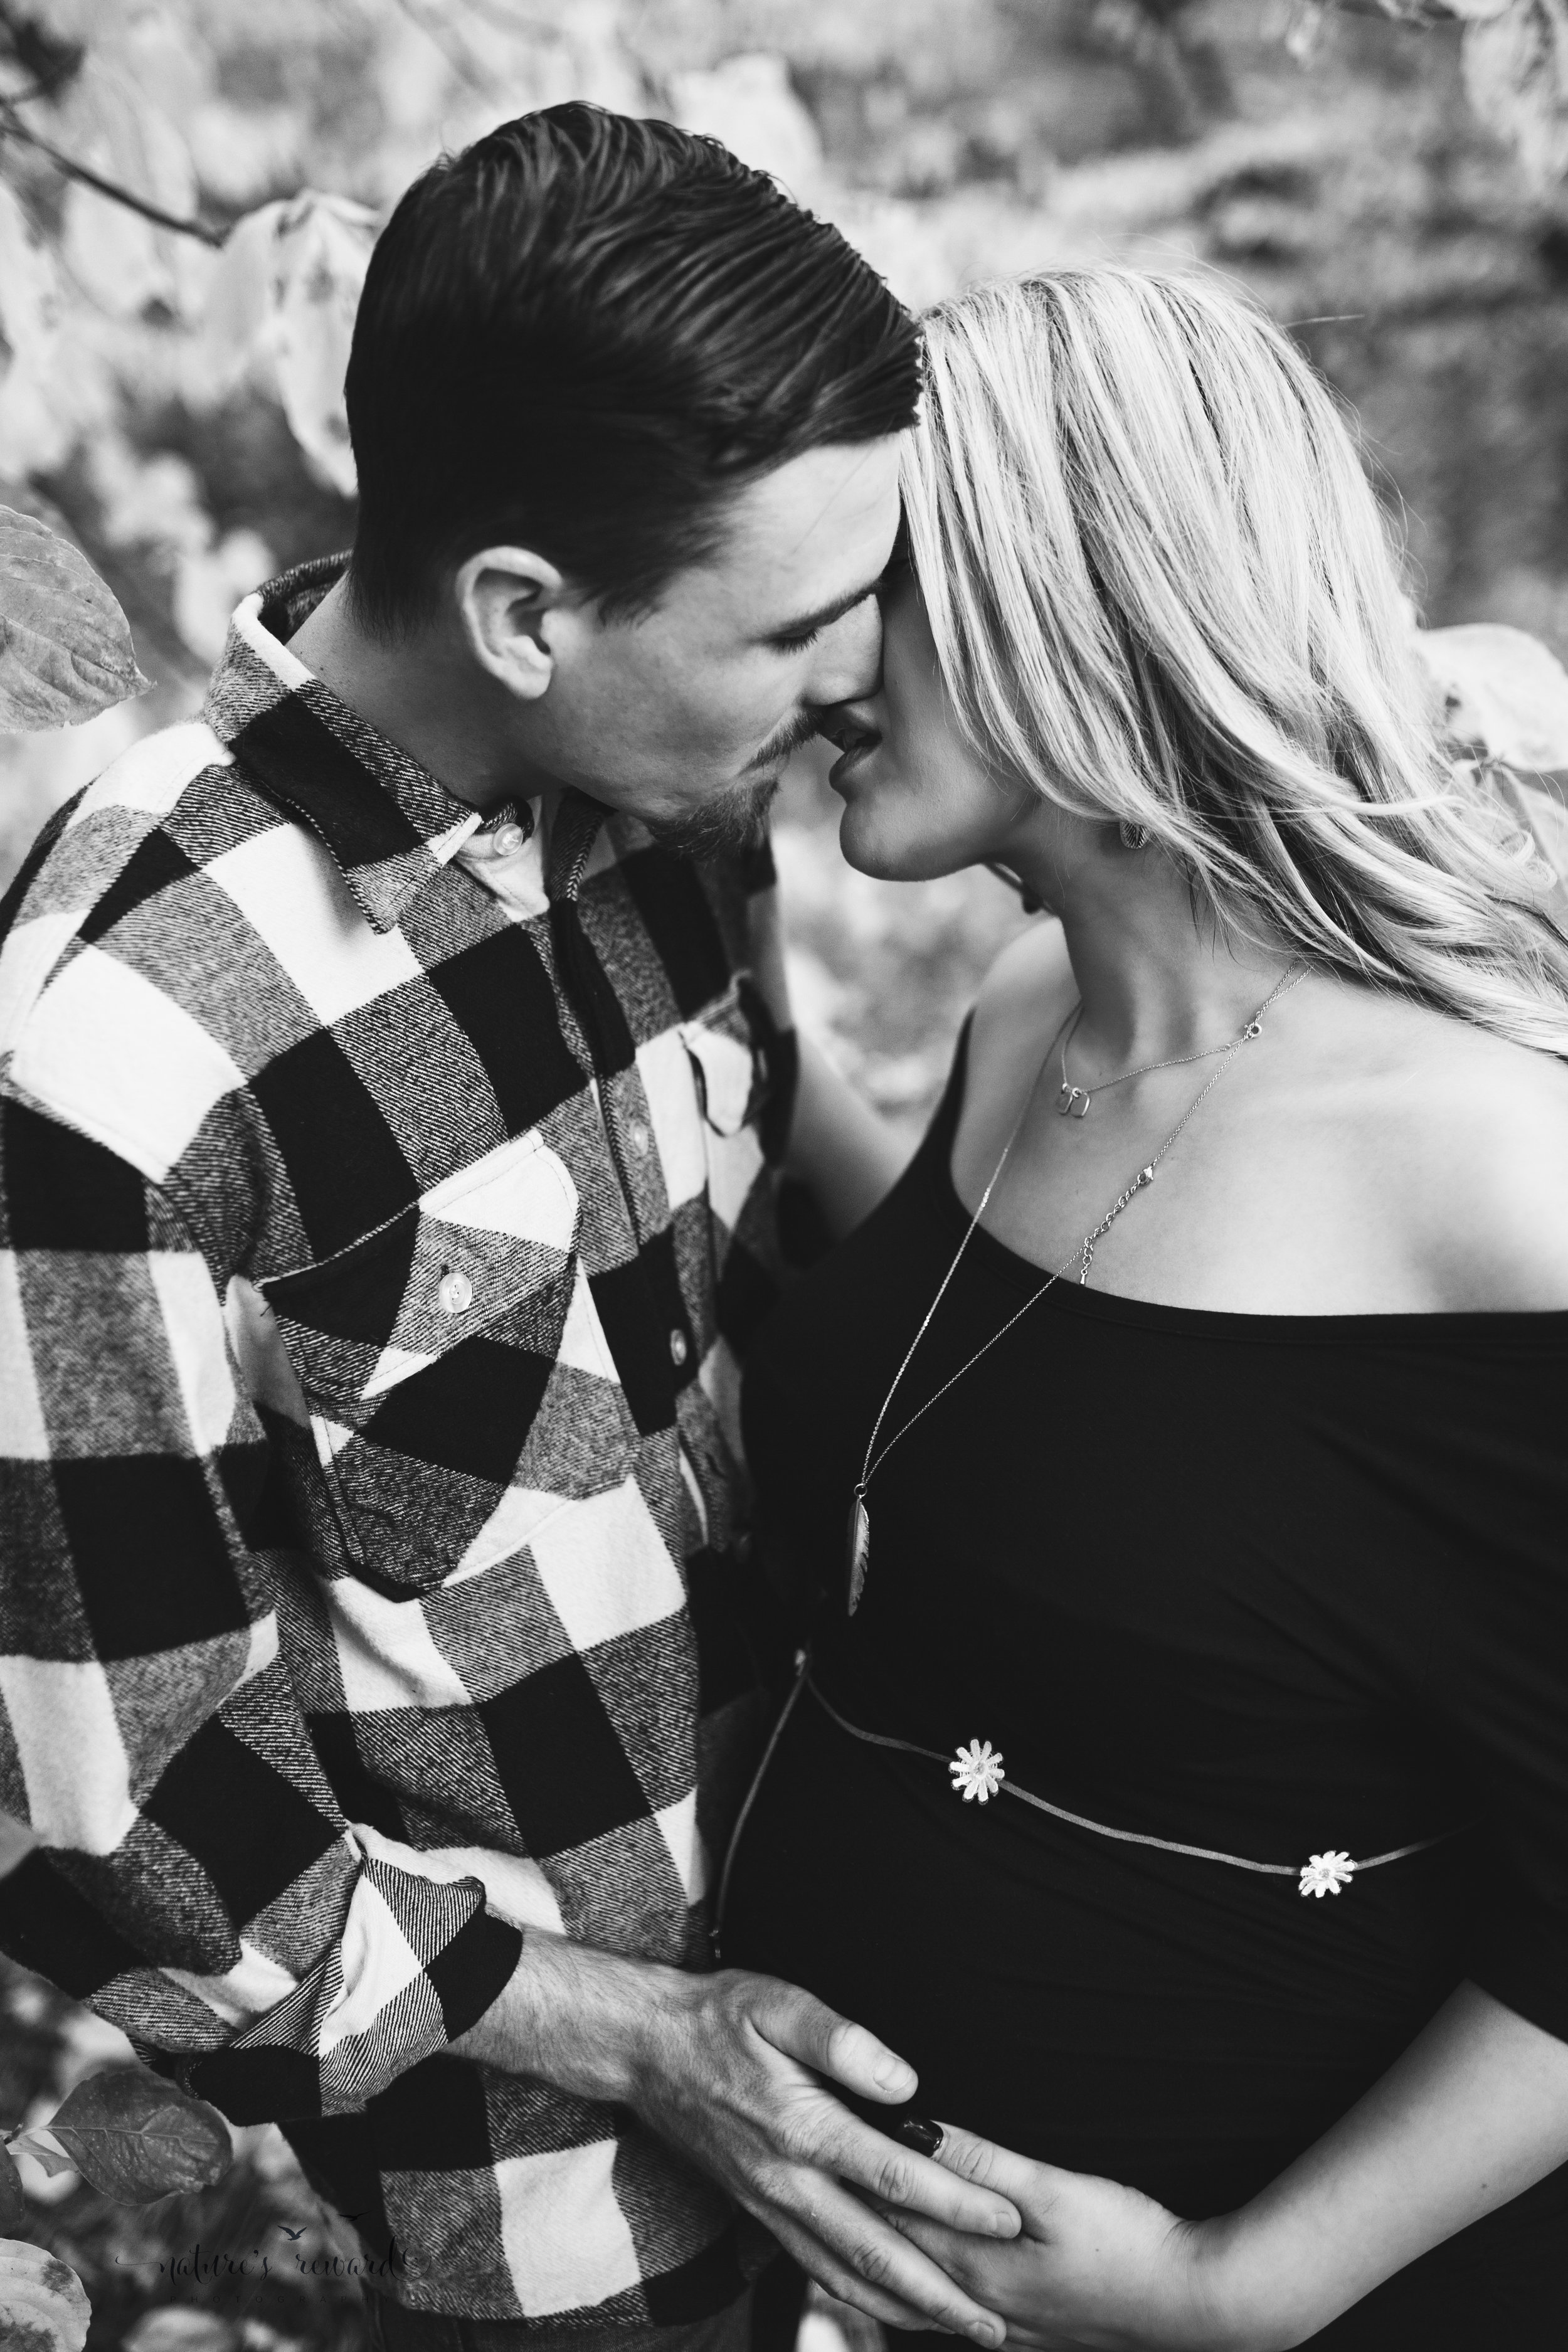 And this moment! OMG it is hot the blog! It started kiss! And I love these moments during a maternity session! <3